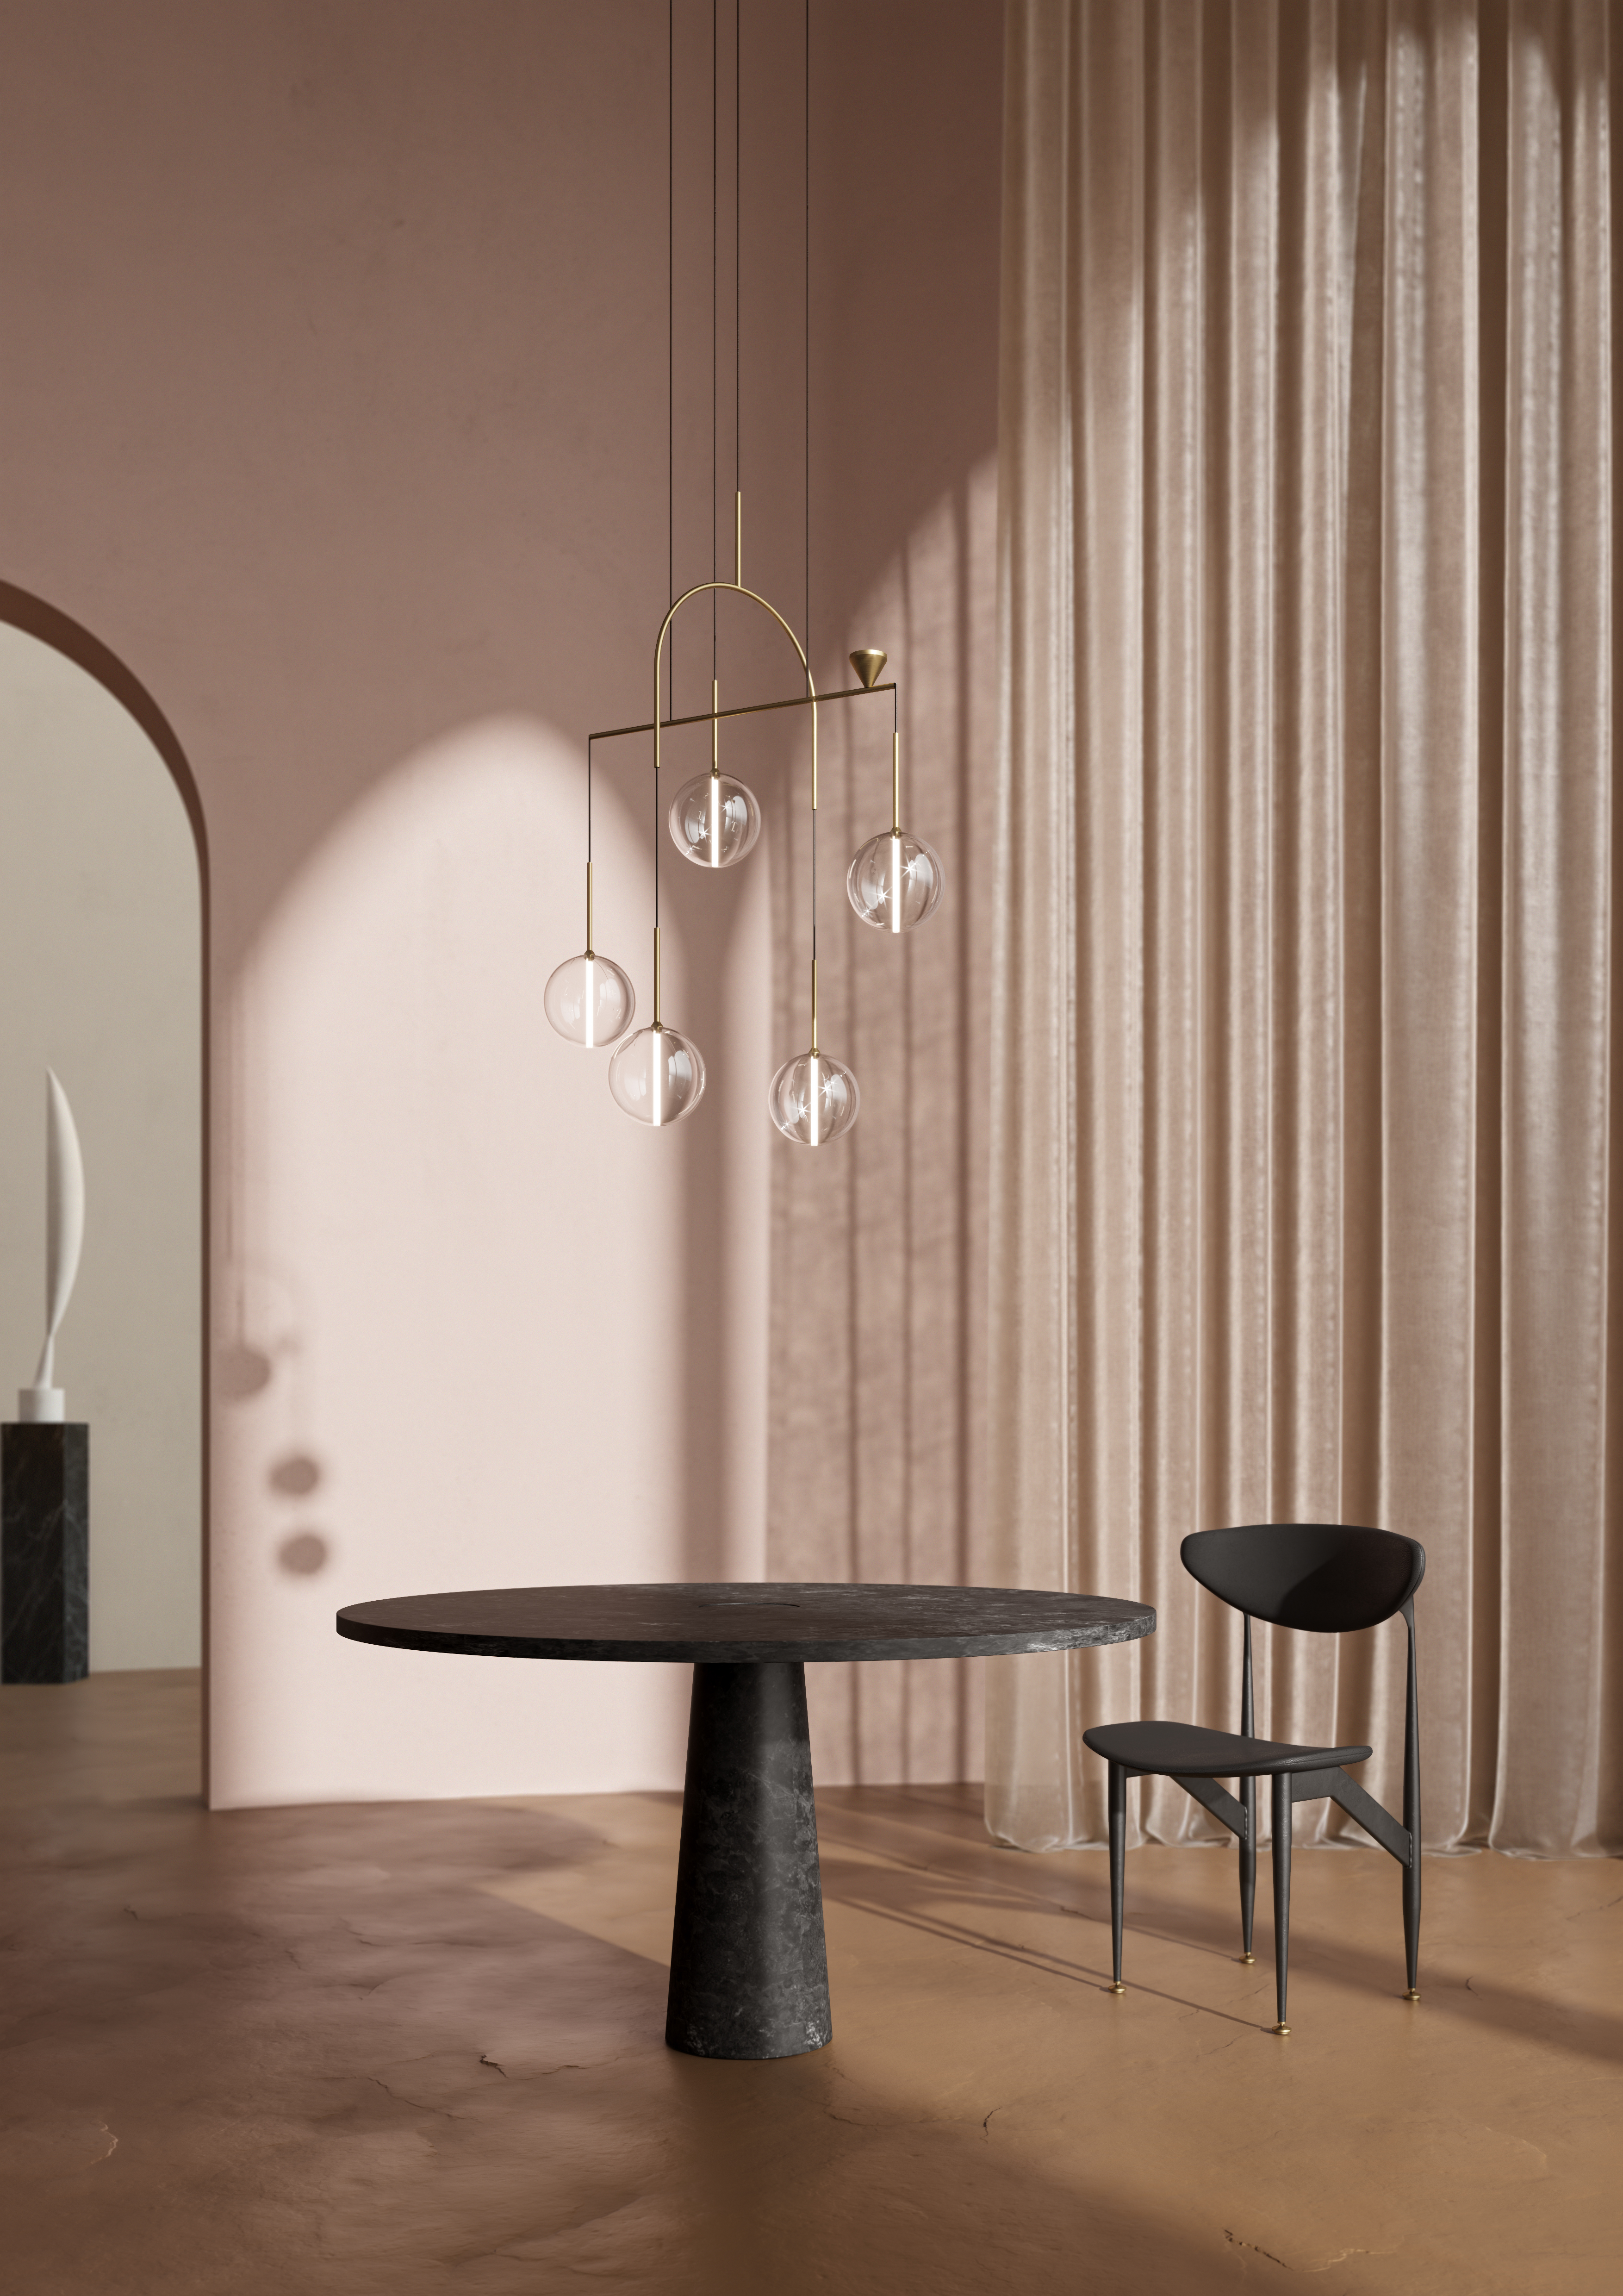 On the occasion of Maison&Objet 2019, design duo Giapato&Coombes has presented the Dewdrops brass pendant light.